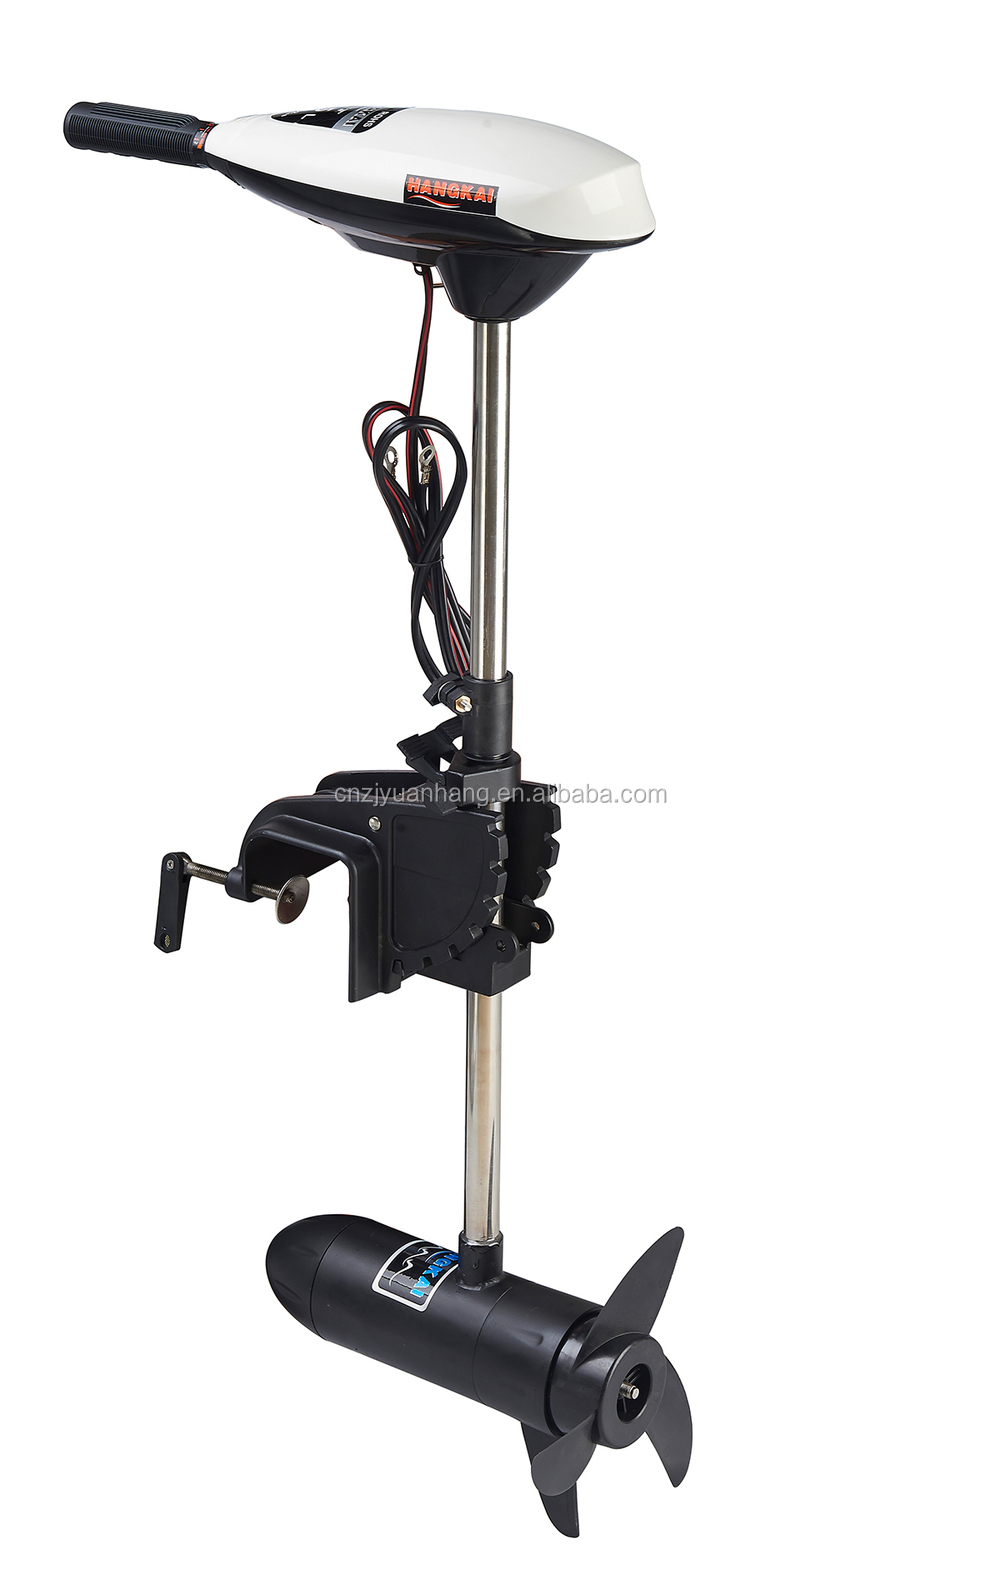 New marine 65lbs thrust 12v electric trolling motor for Electric trolling motor accessories